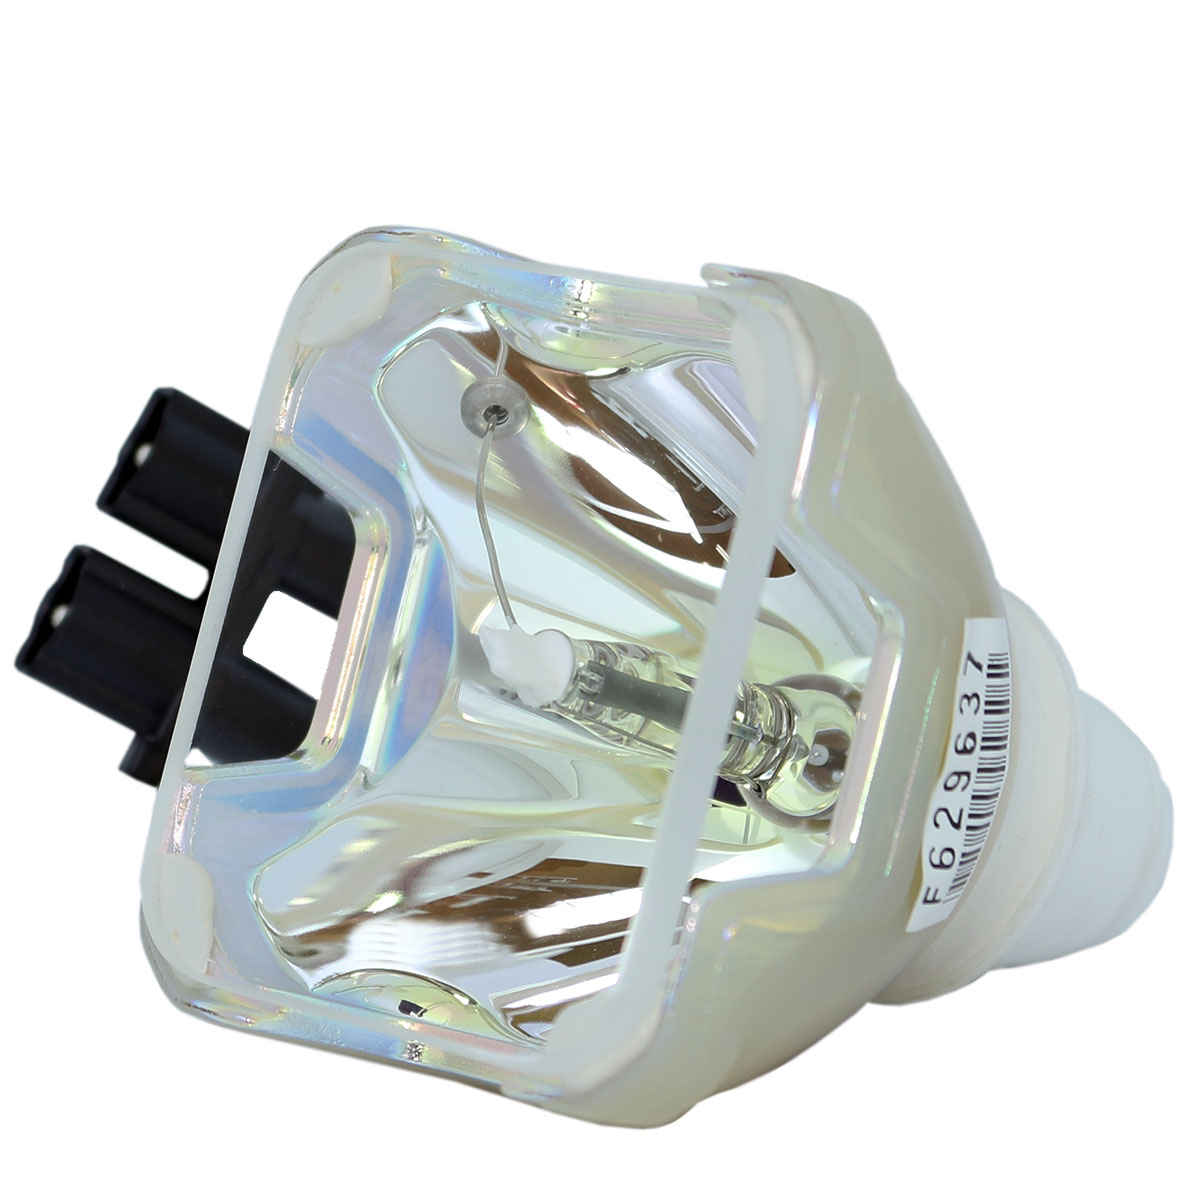 Compatible Bare Bulb LV-LP21 9923A001 for Canon LV-X4 / LV-X4E Projector Lamp Bulb without housing compatible bare bulb lv lp30 2481b001 for canon lv 7365 projector lamp bulb without housing